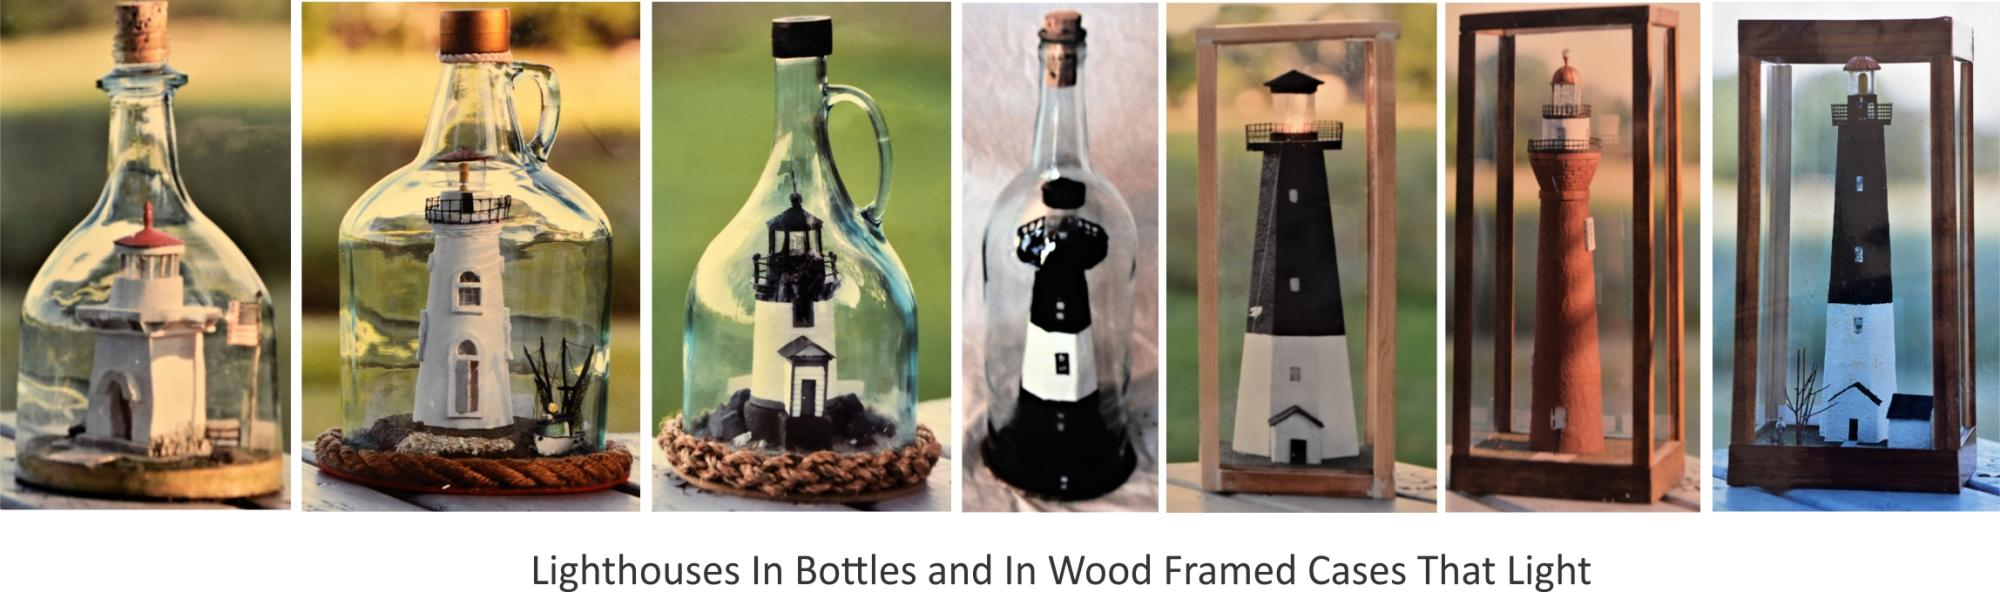 vets_views_lighthouses_bottles_cases3.jpg